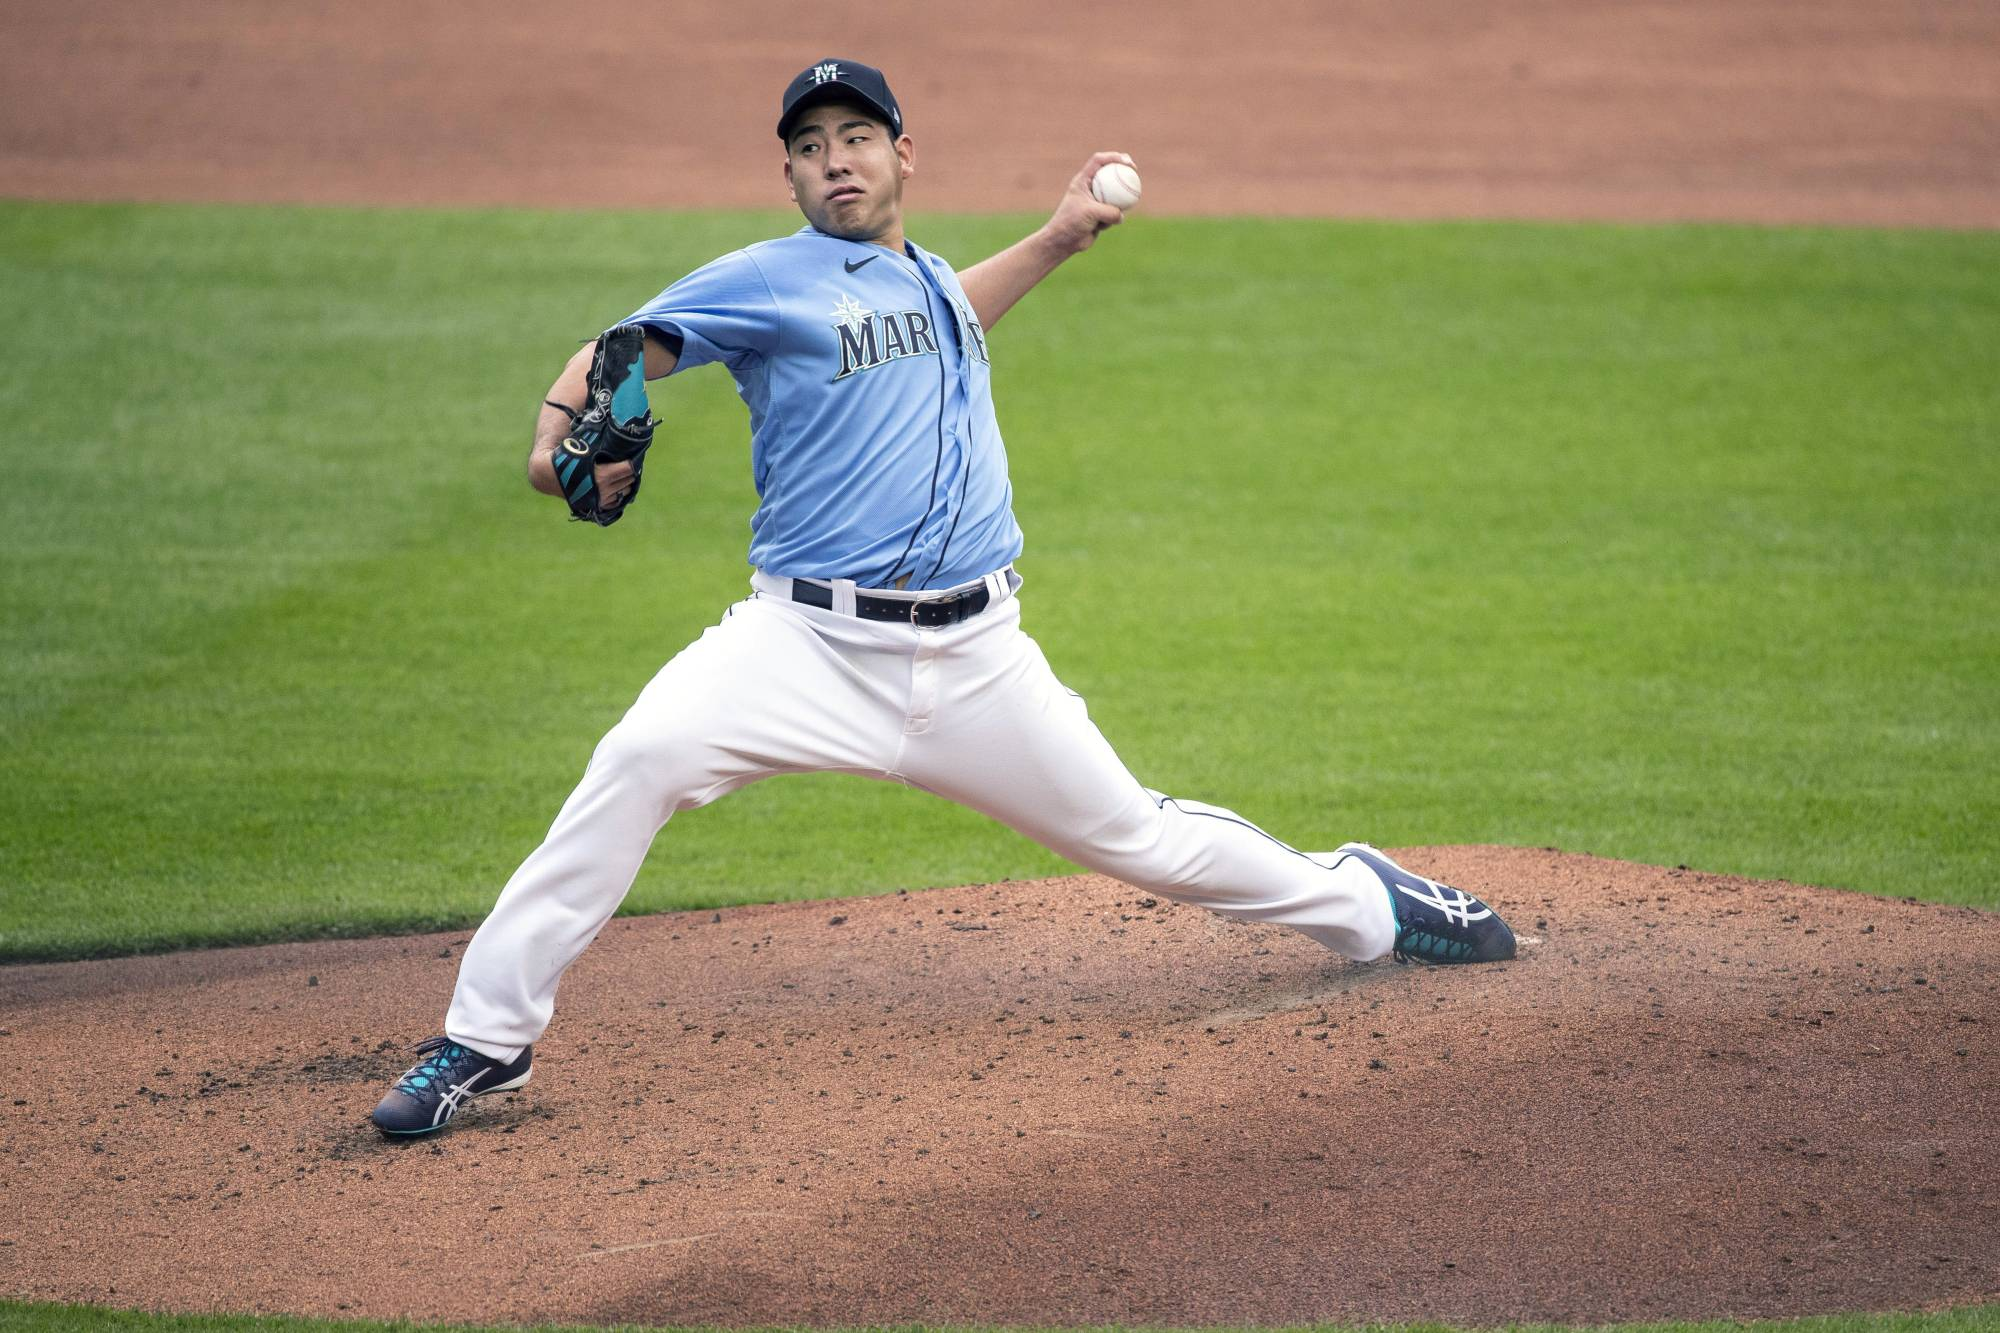 Mariners pitcher Yusei Kikuchi throws live batting practice on Wednesday at T-Mobile Park in Seattle. | AP